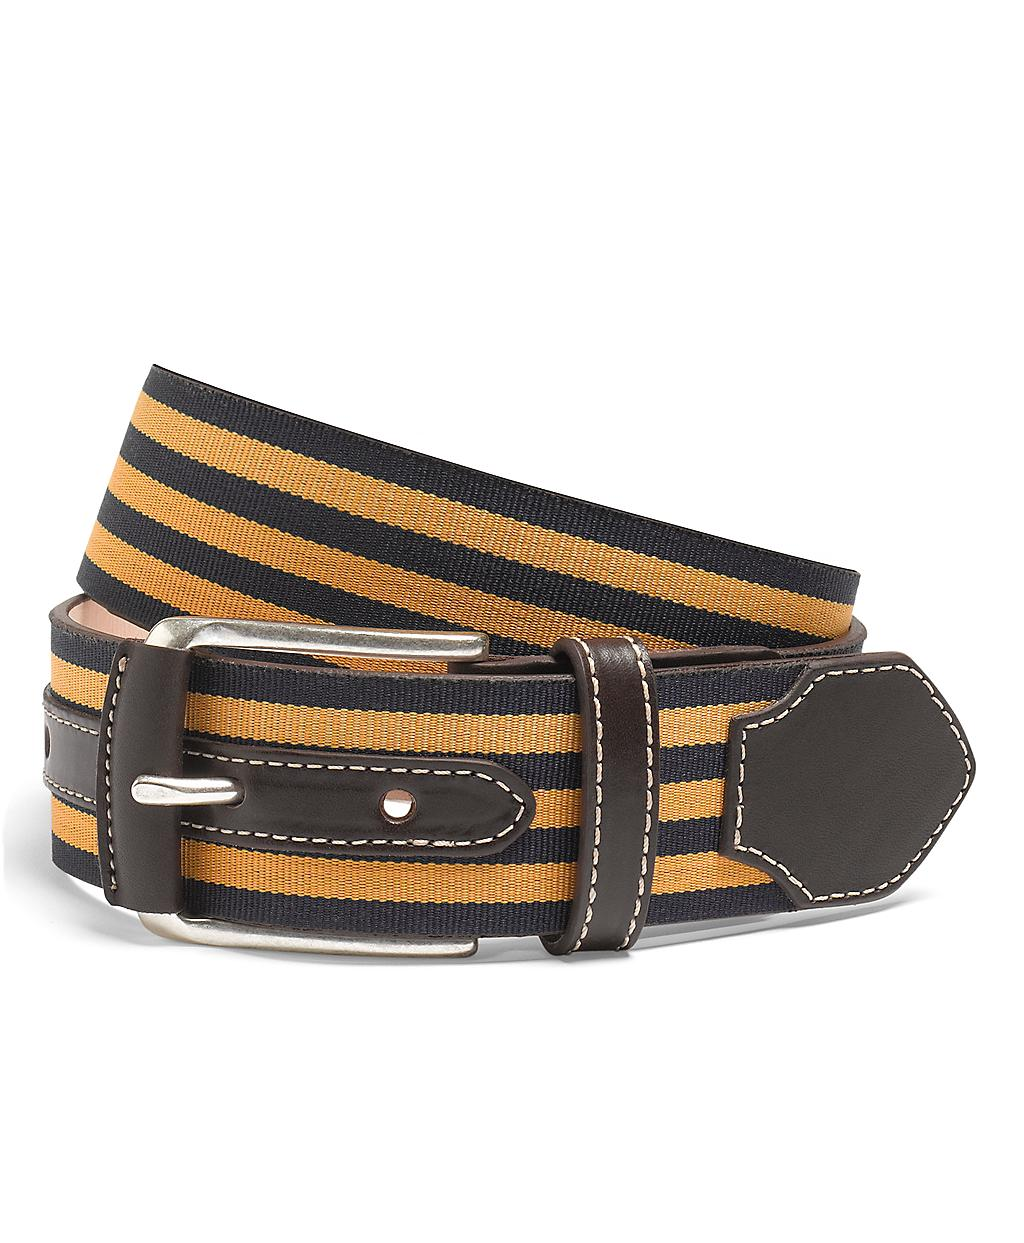 brothers leather and grosgrain striped belt in